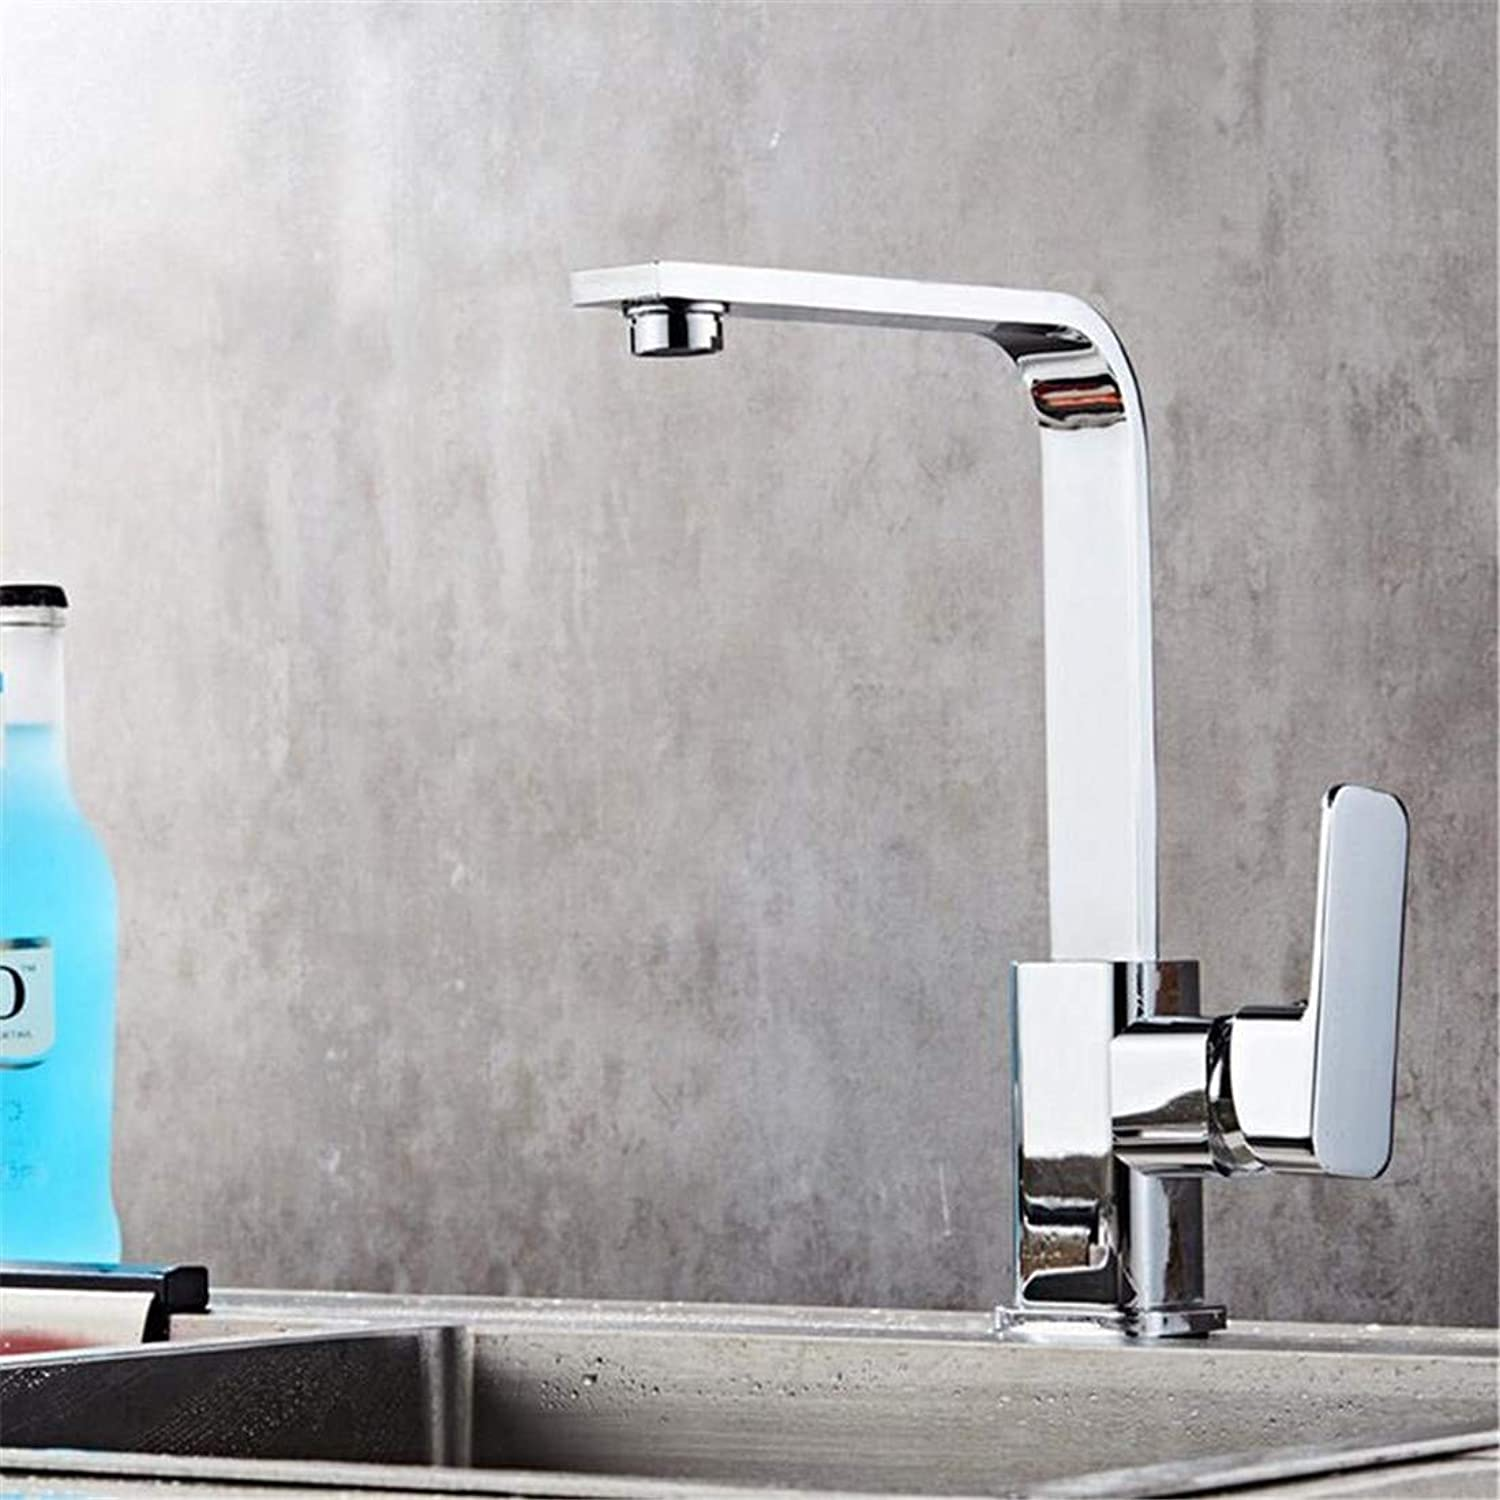 Hot and Cold Water Brass Chrome Kitchen Taps Kitchen Sink Hot and Cold 360 Degree redatable Basin